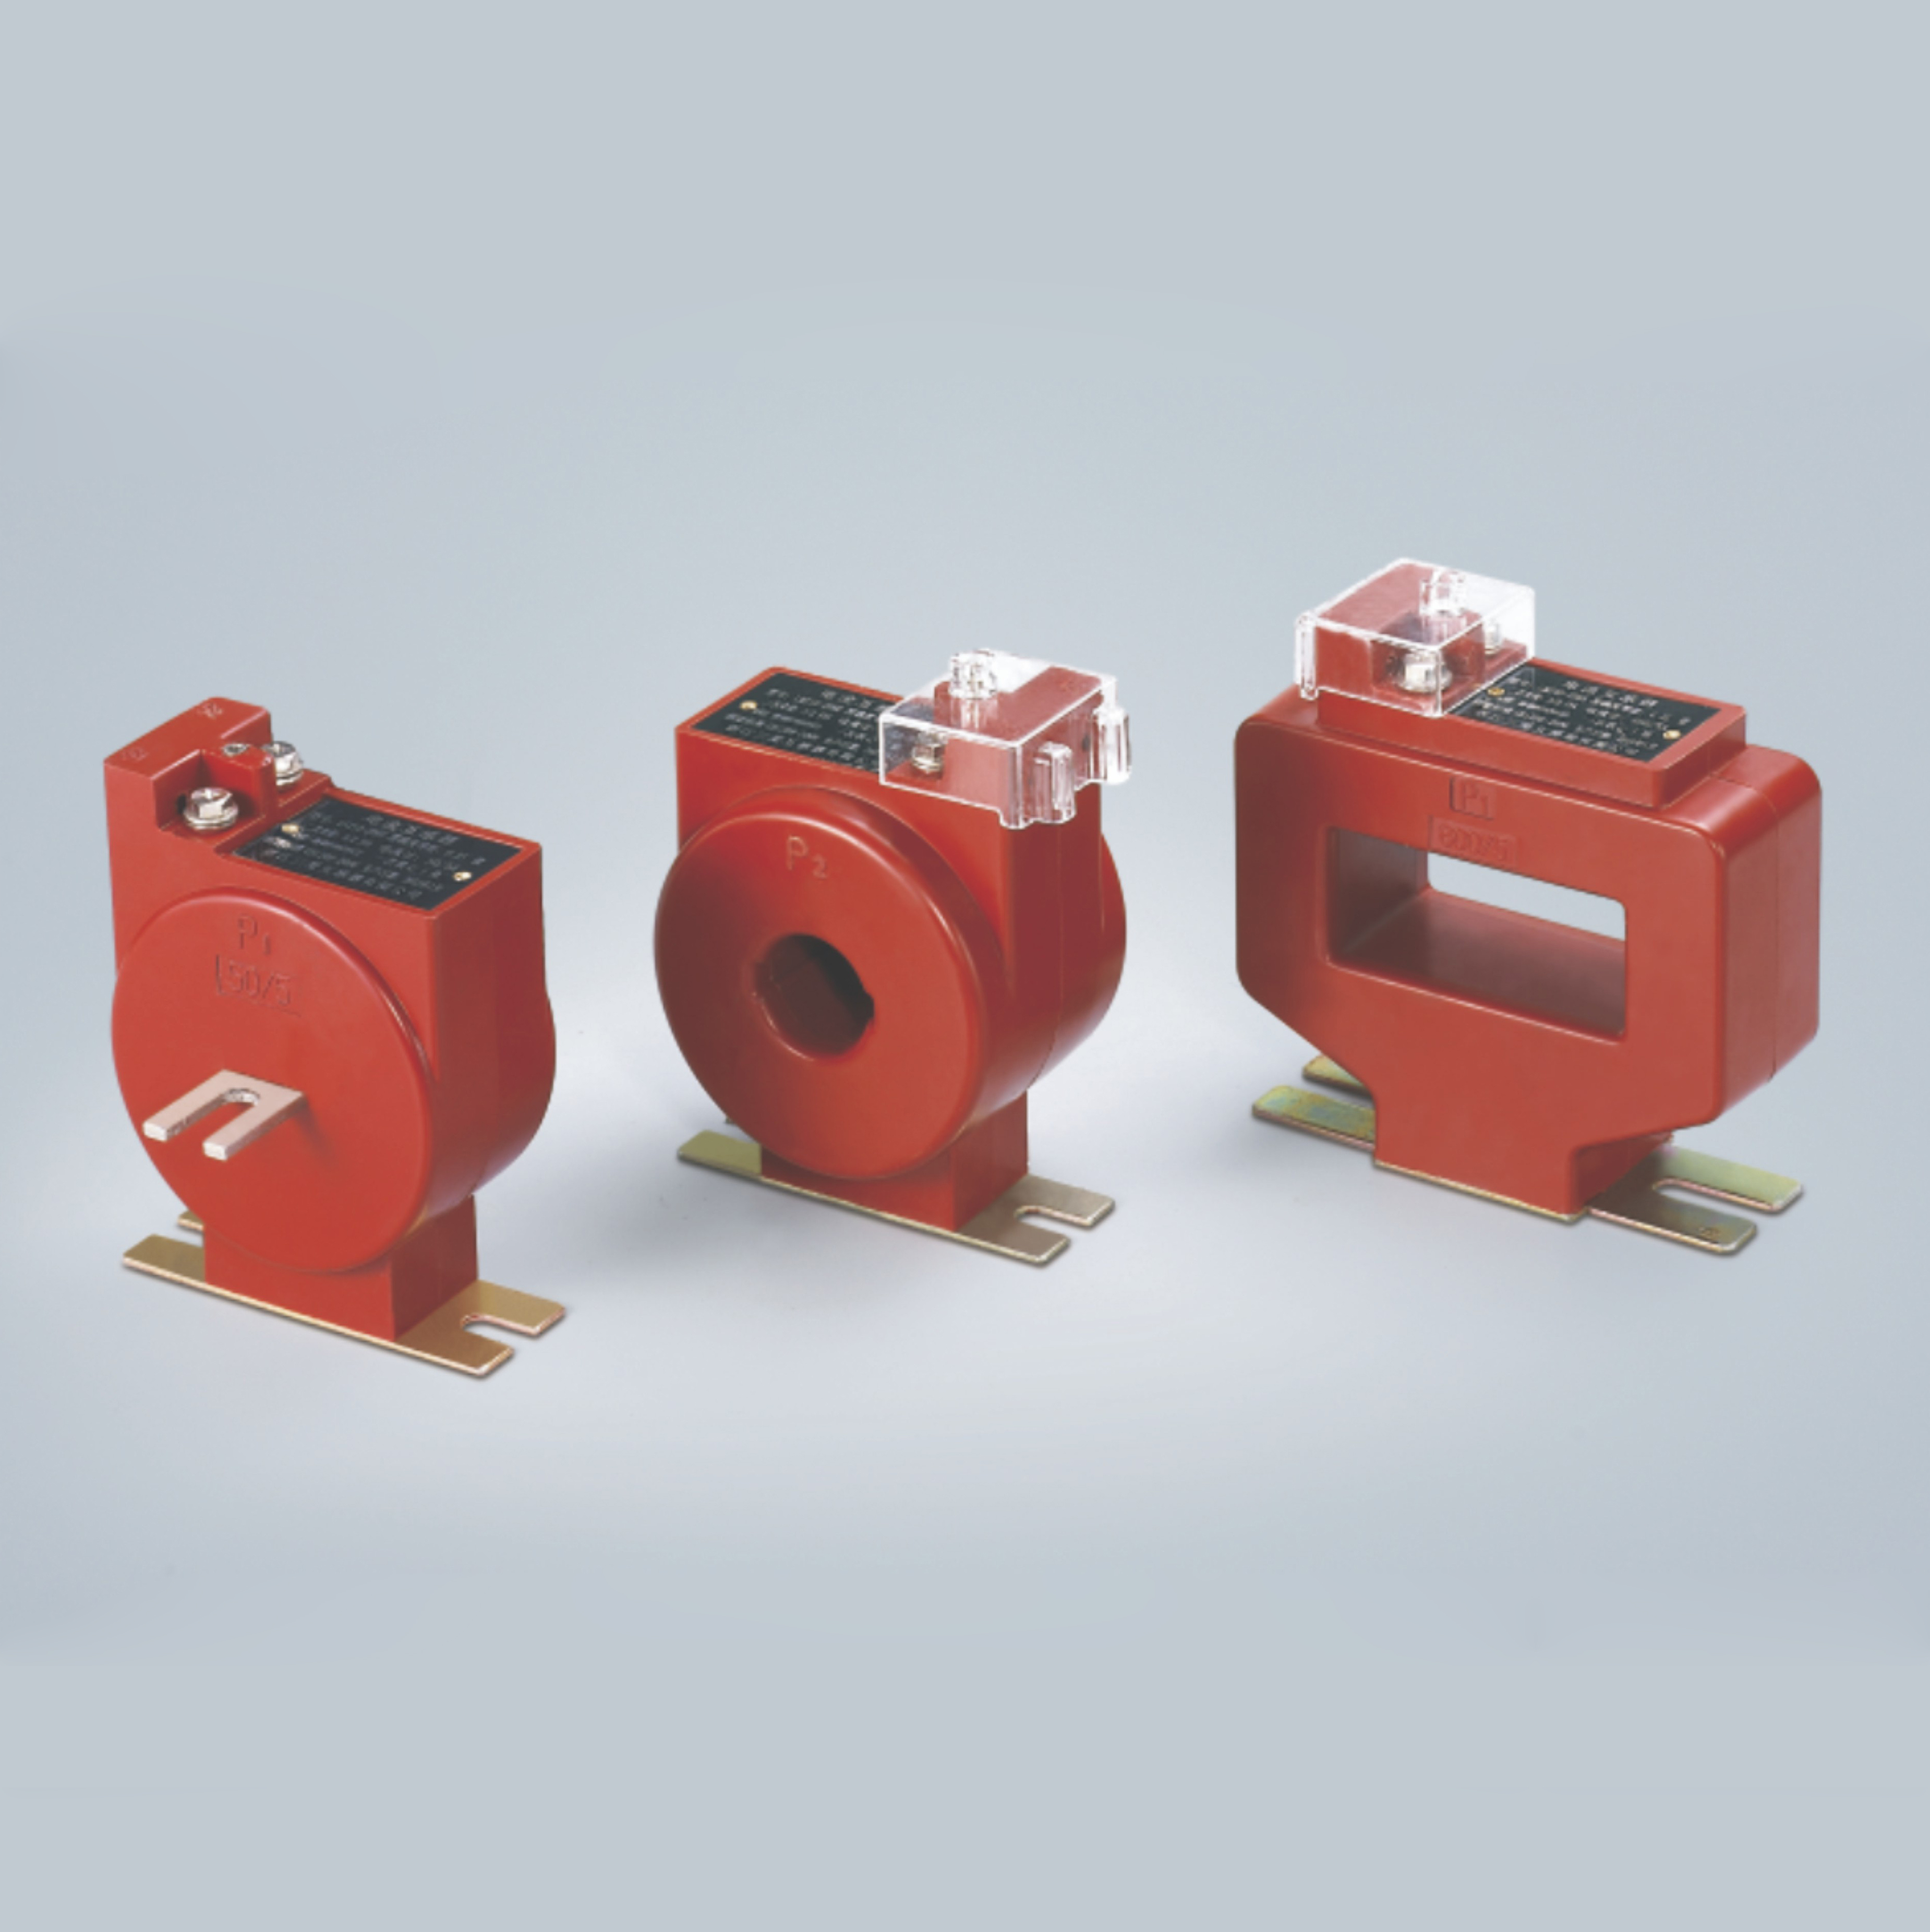 LFZD-0.66/LMZ□D-0.66 Series Current Transformer